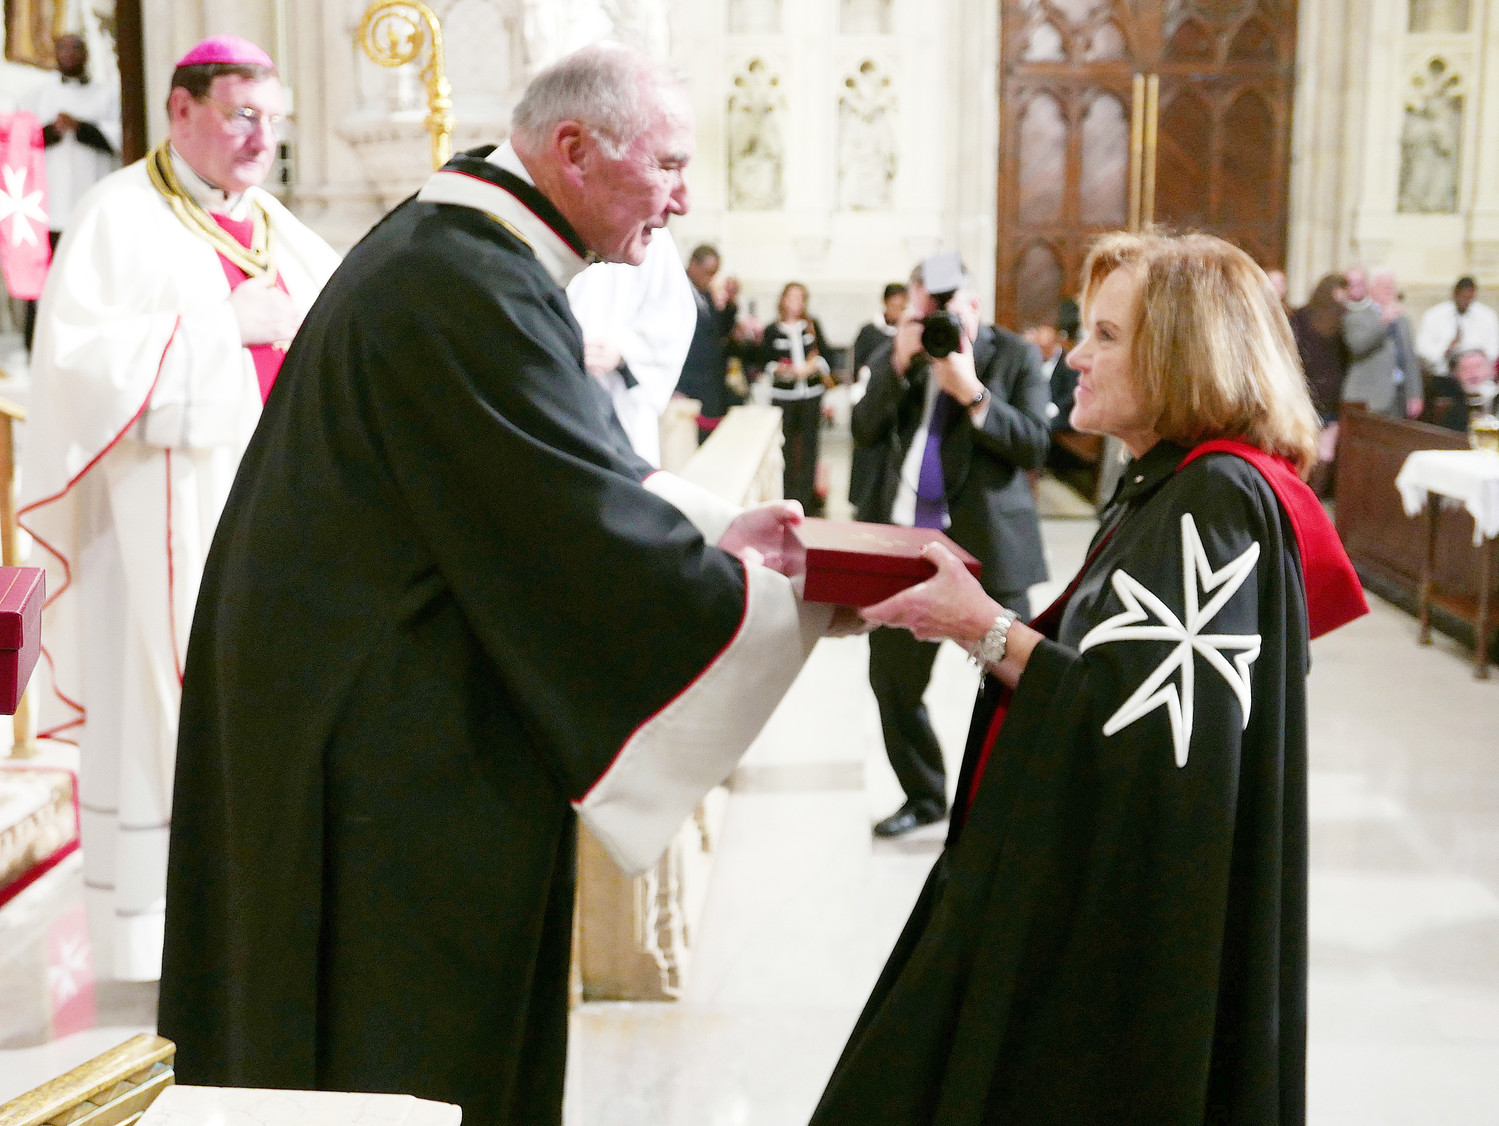 Wearing the traditional black Order of Malta robes, the new knights and dames are presented their crosses, encased in boxes, from Jack Pohrer, president of the American Association of the Order of Malta, above. They were accepted into the order during a Nov. 3 Mass at St. Patrick's Cathedral celebrated by Bishop Jean Clément Laffitte, prelate of the Order of Malta, pictured behind Pohrer at top right